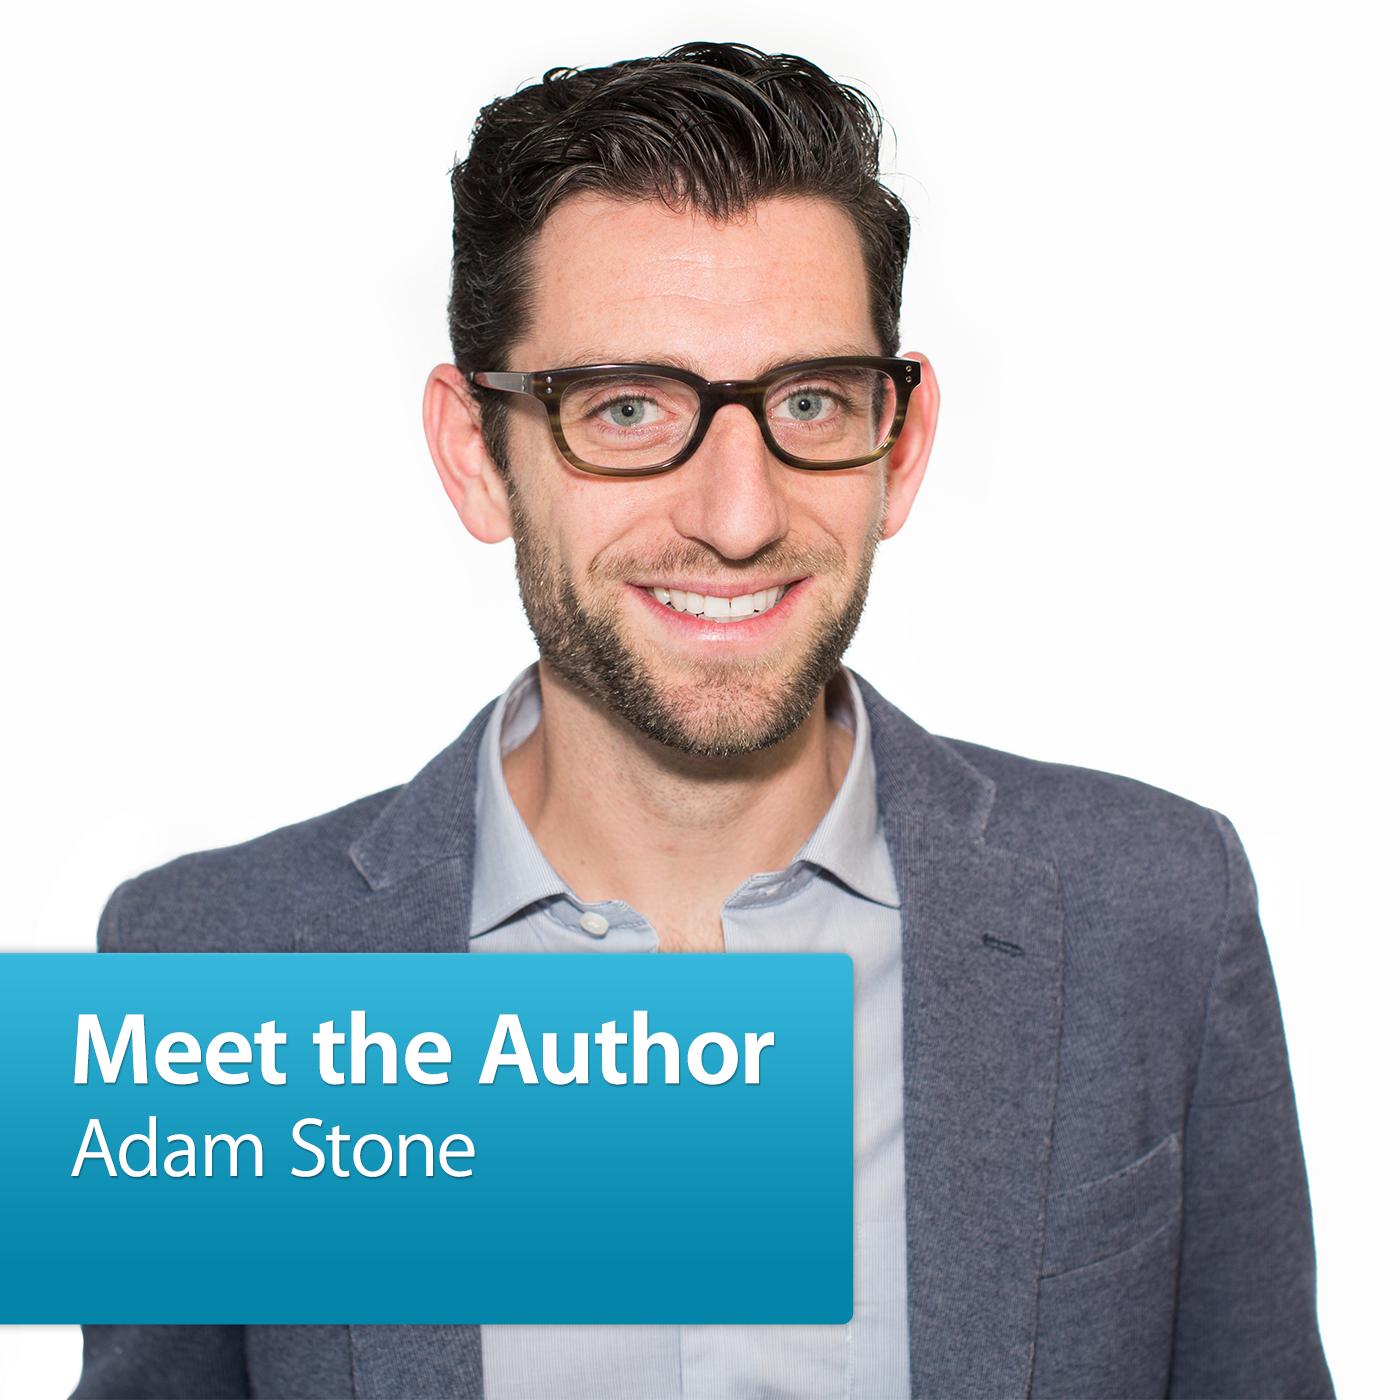 Adam Stone: Meet the Author